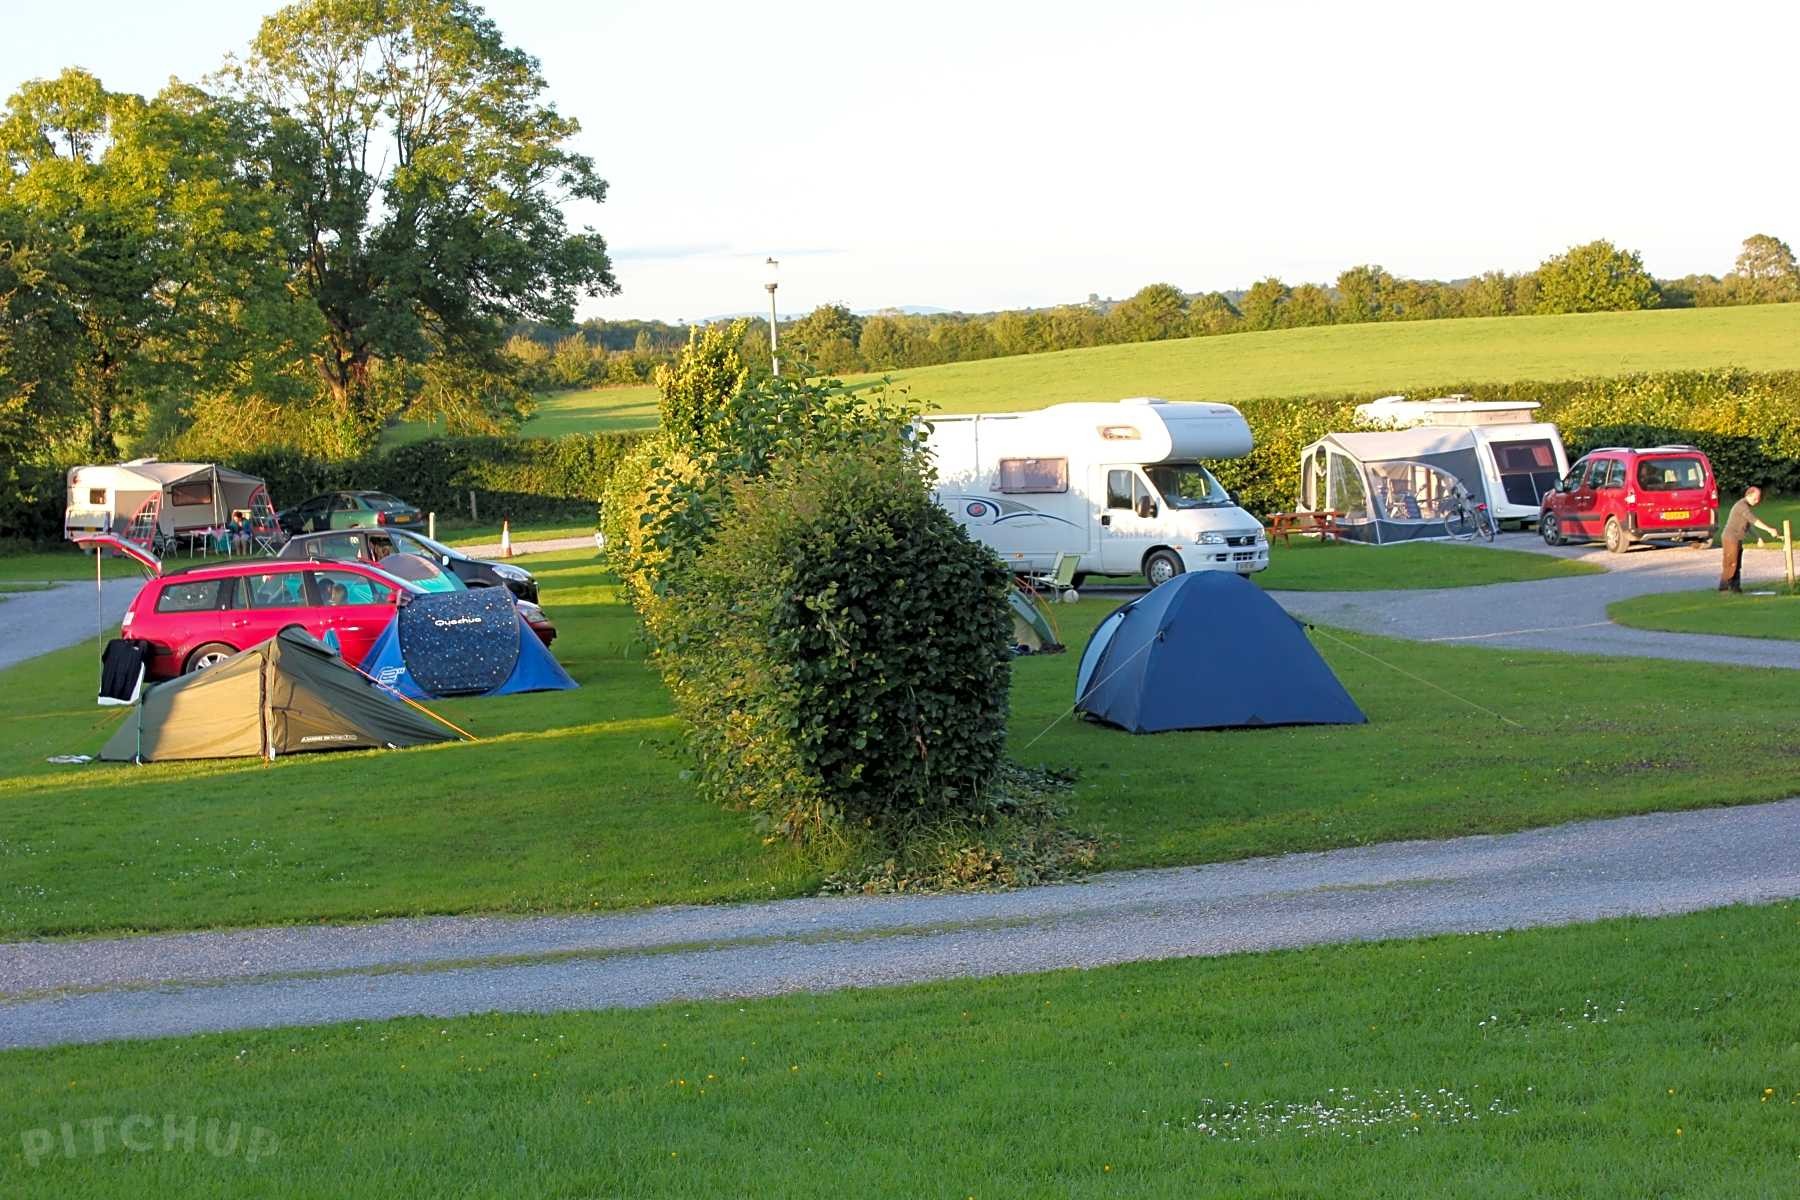 Wild Atlantic Camp, Letterkenny - Pitchup - kurikku.co.uk